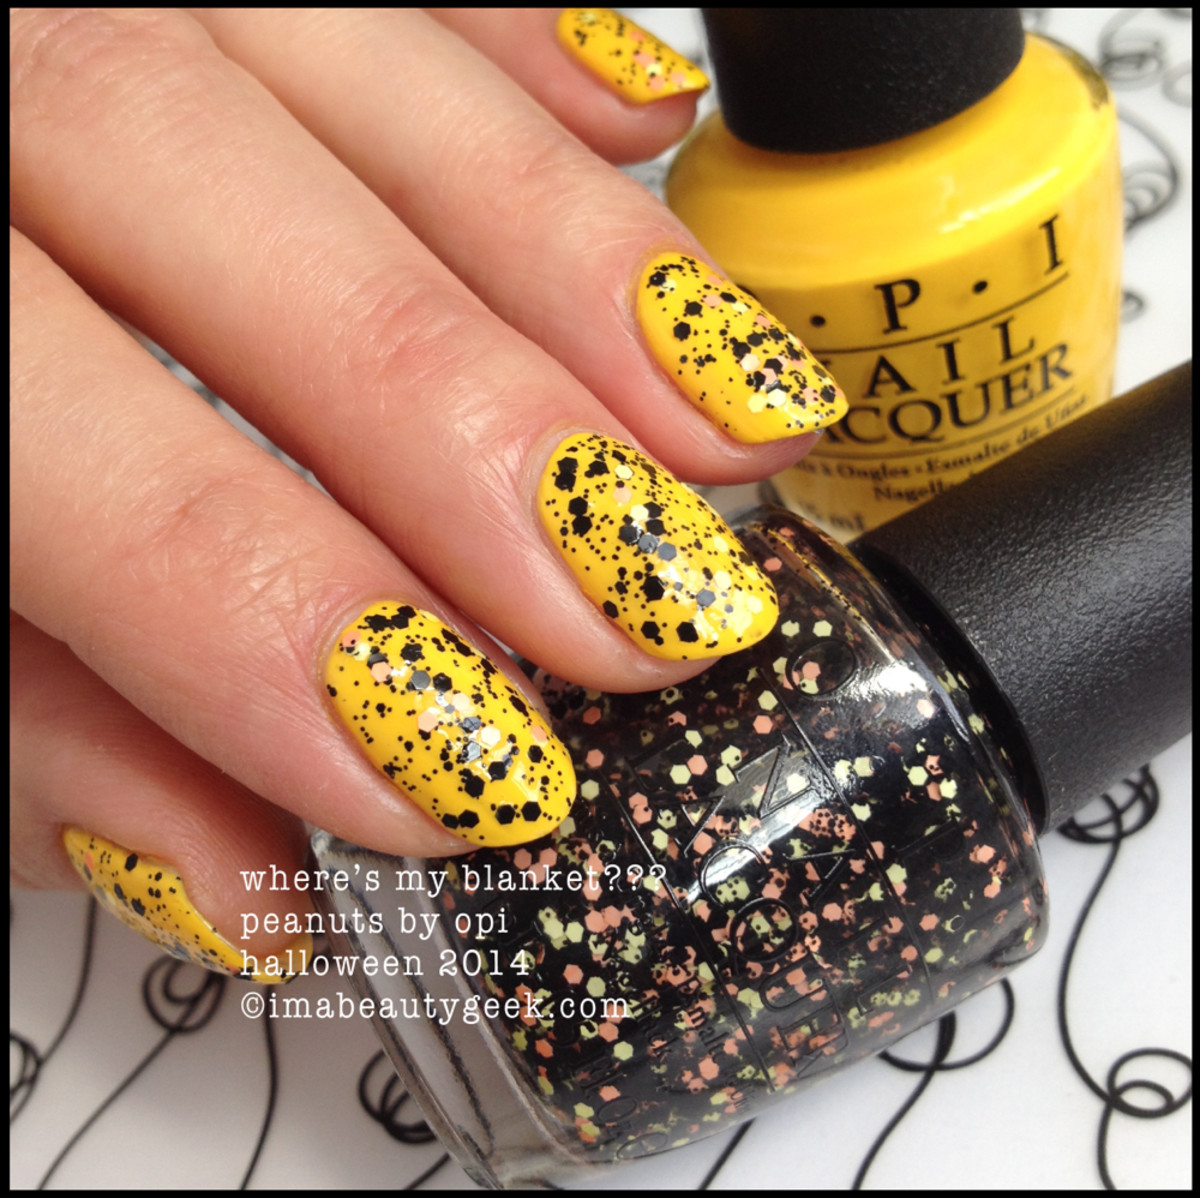 OPI Where's My Blanket Peanuts by OPI Halloween 2014